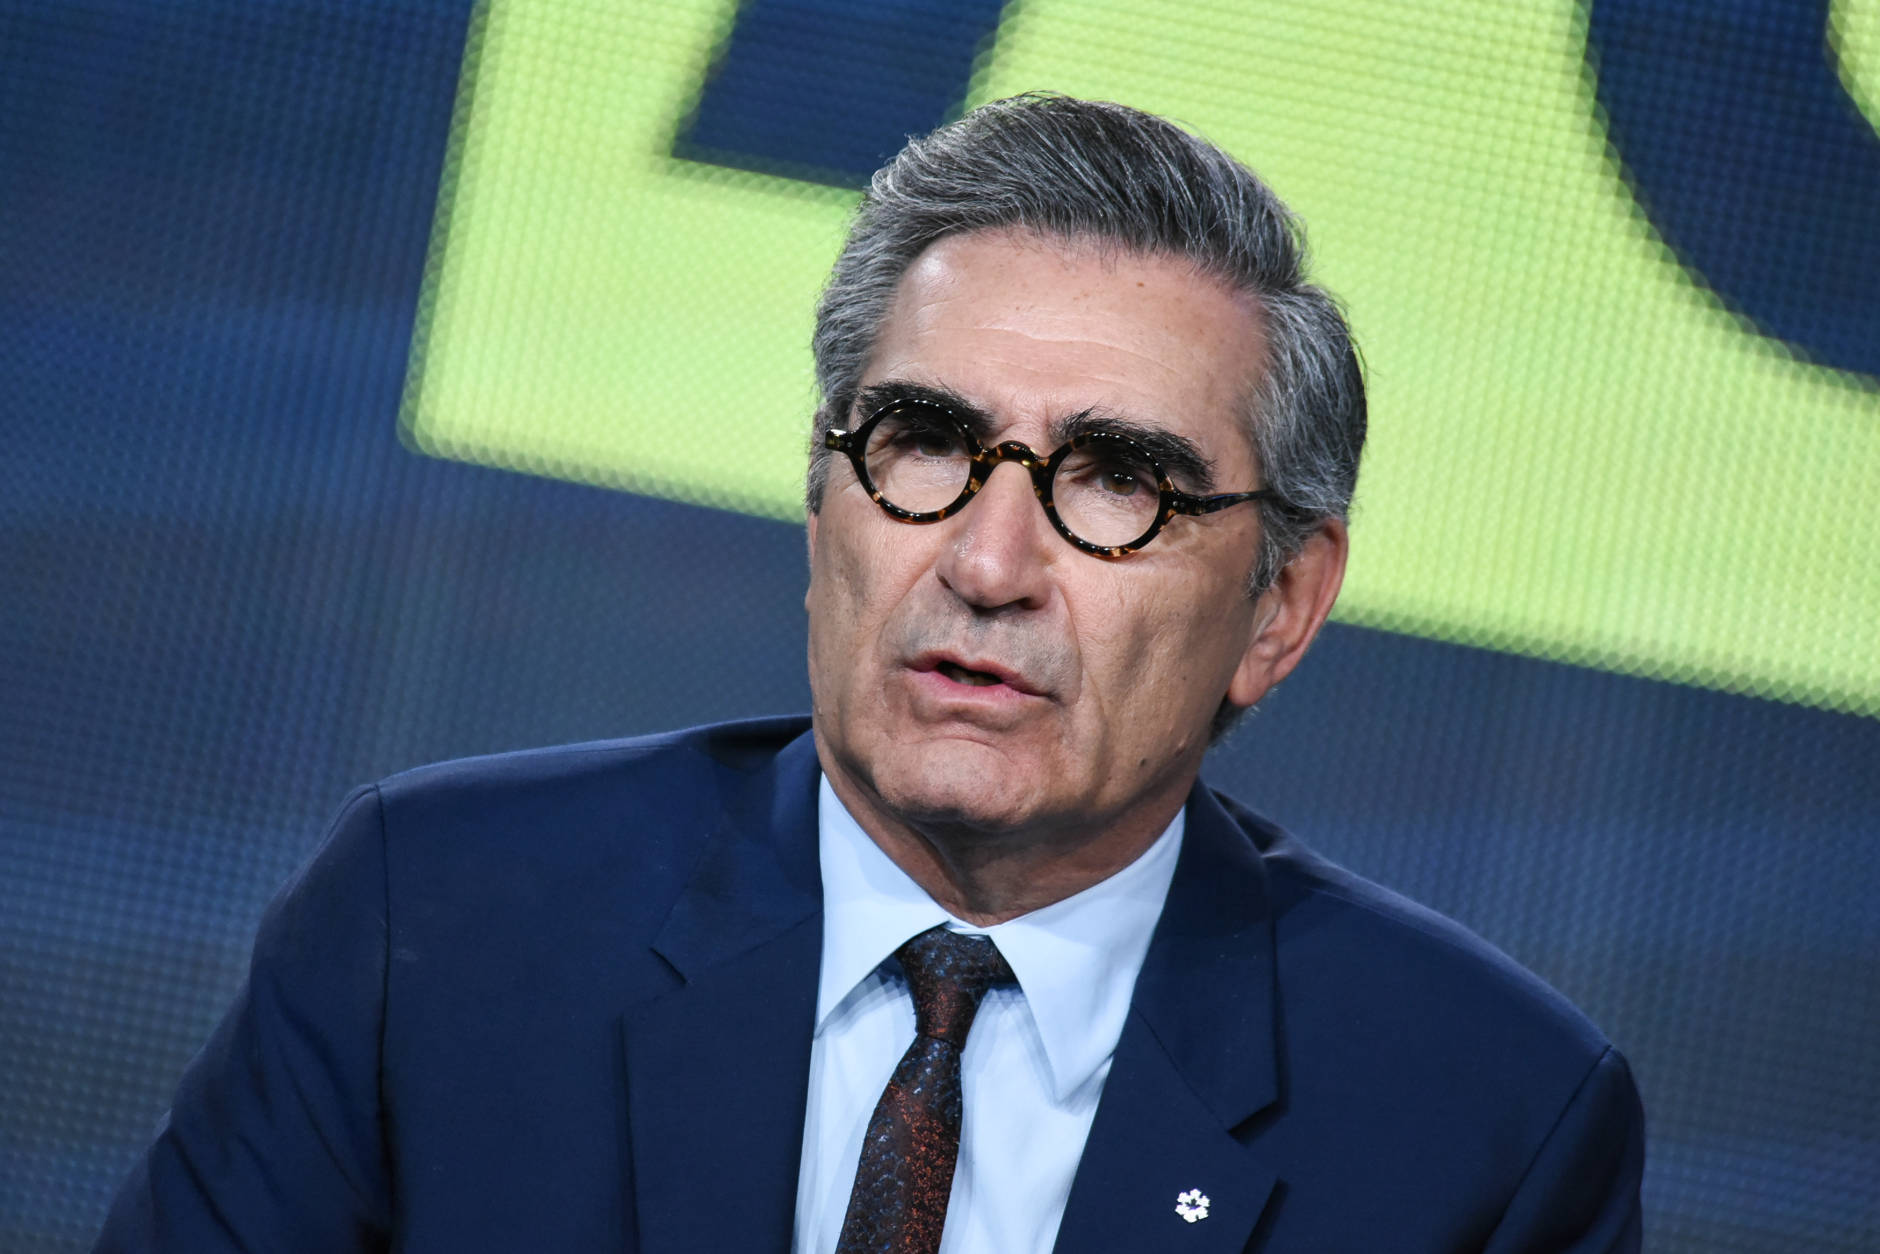 """Eugene Levy speaks onstage during the """"Schitt's Creek"""" panel at the Pop Network 2015 Winter TCA on Friday, Jan. 9, 2015, in Pasadena, Calif. (Photo by Richard Shotwell/Invision/AP)"""